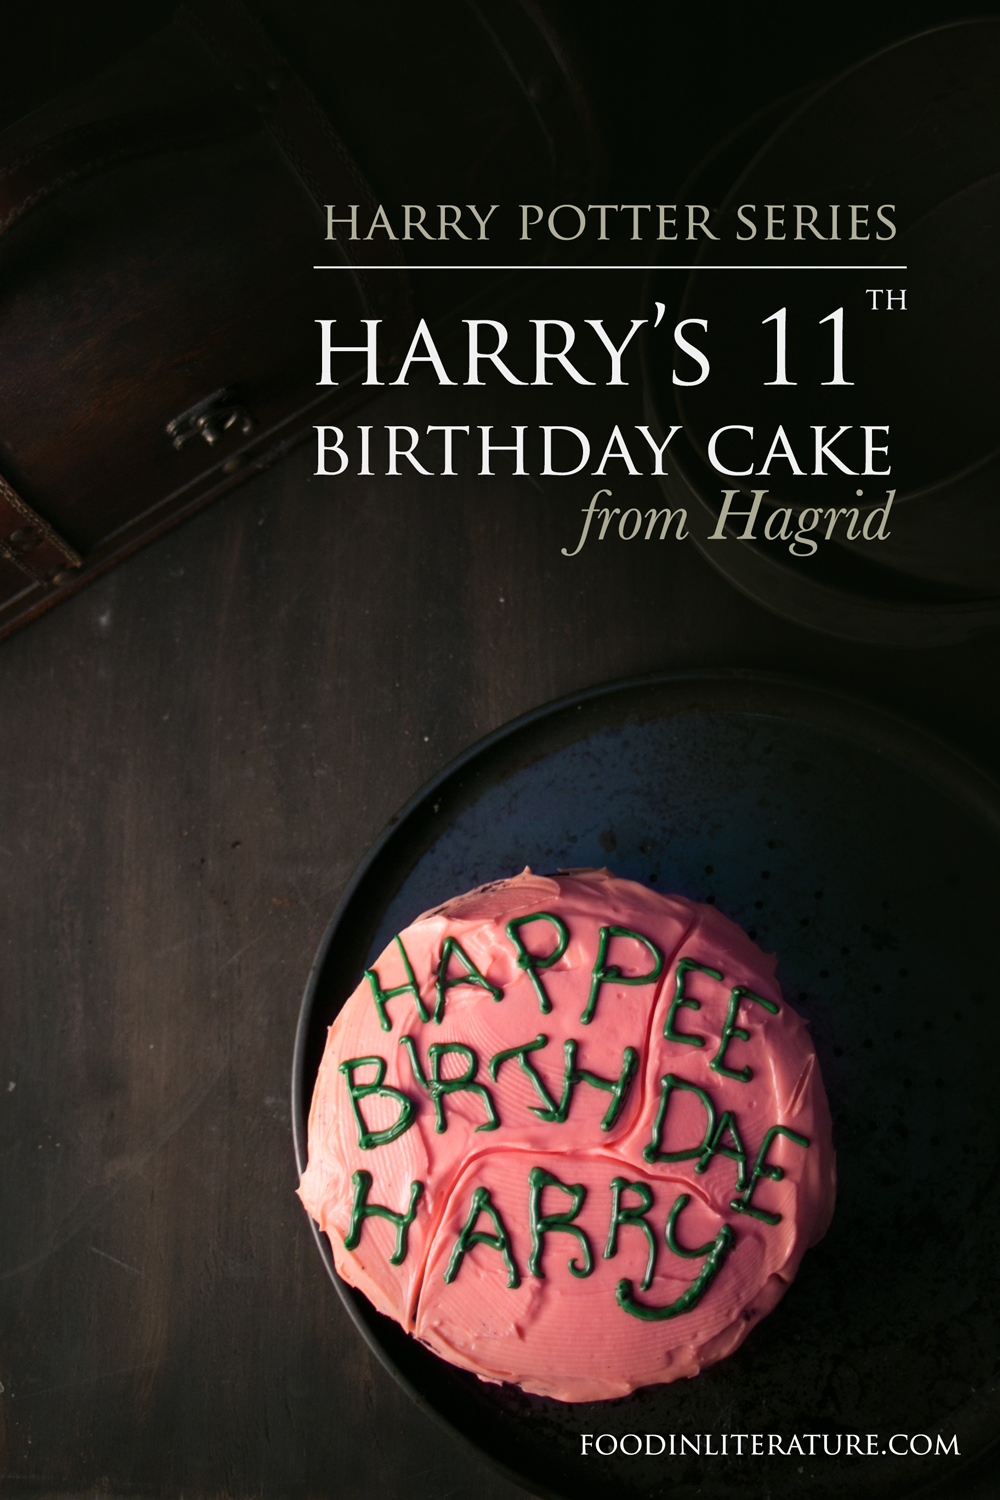 Astonishing Harrys 11Th Birthday Cake From Hagrid In Literature Personalised Birthday Cards Paralily Jamesorg